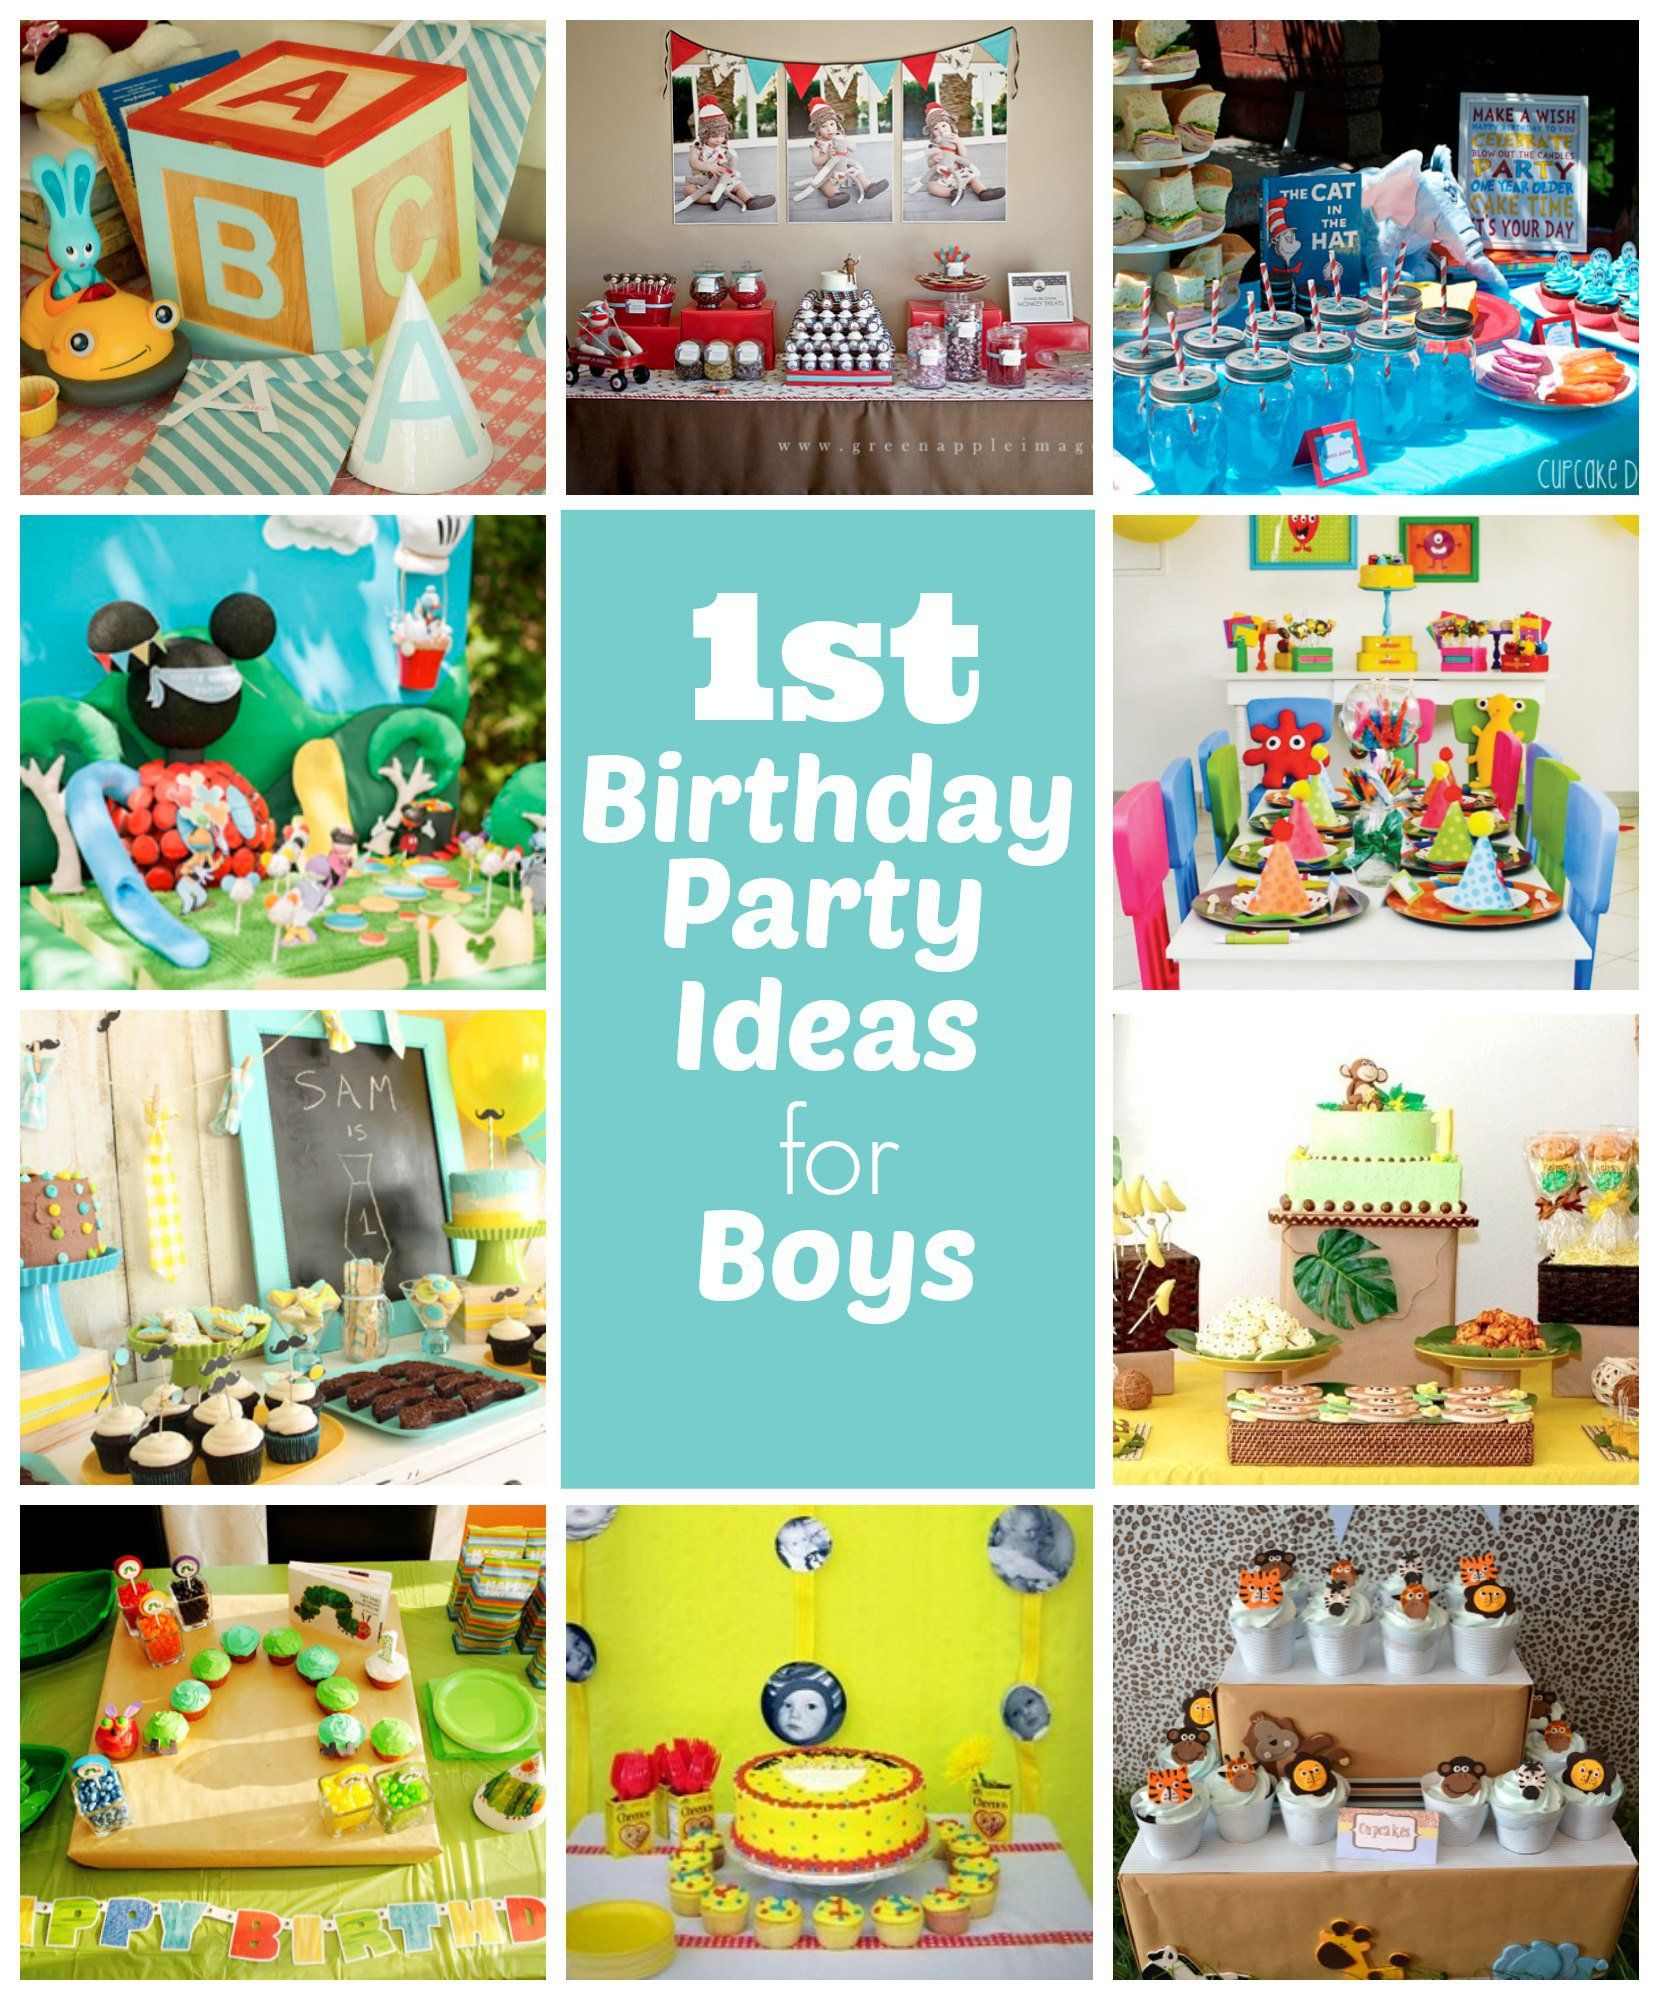 1st-Birthday-Party-Ideas-for-Boys.jpg 1.659×2.000 piksel